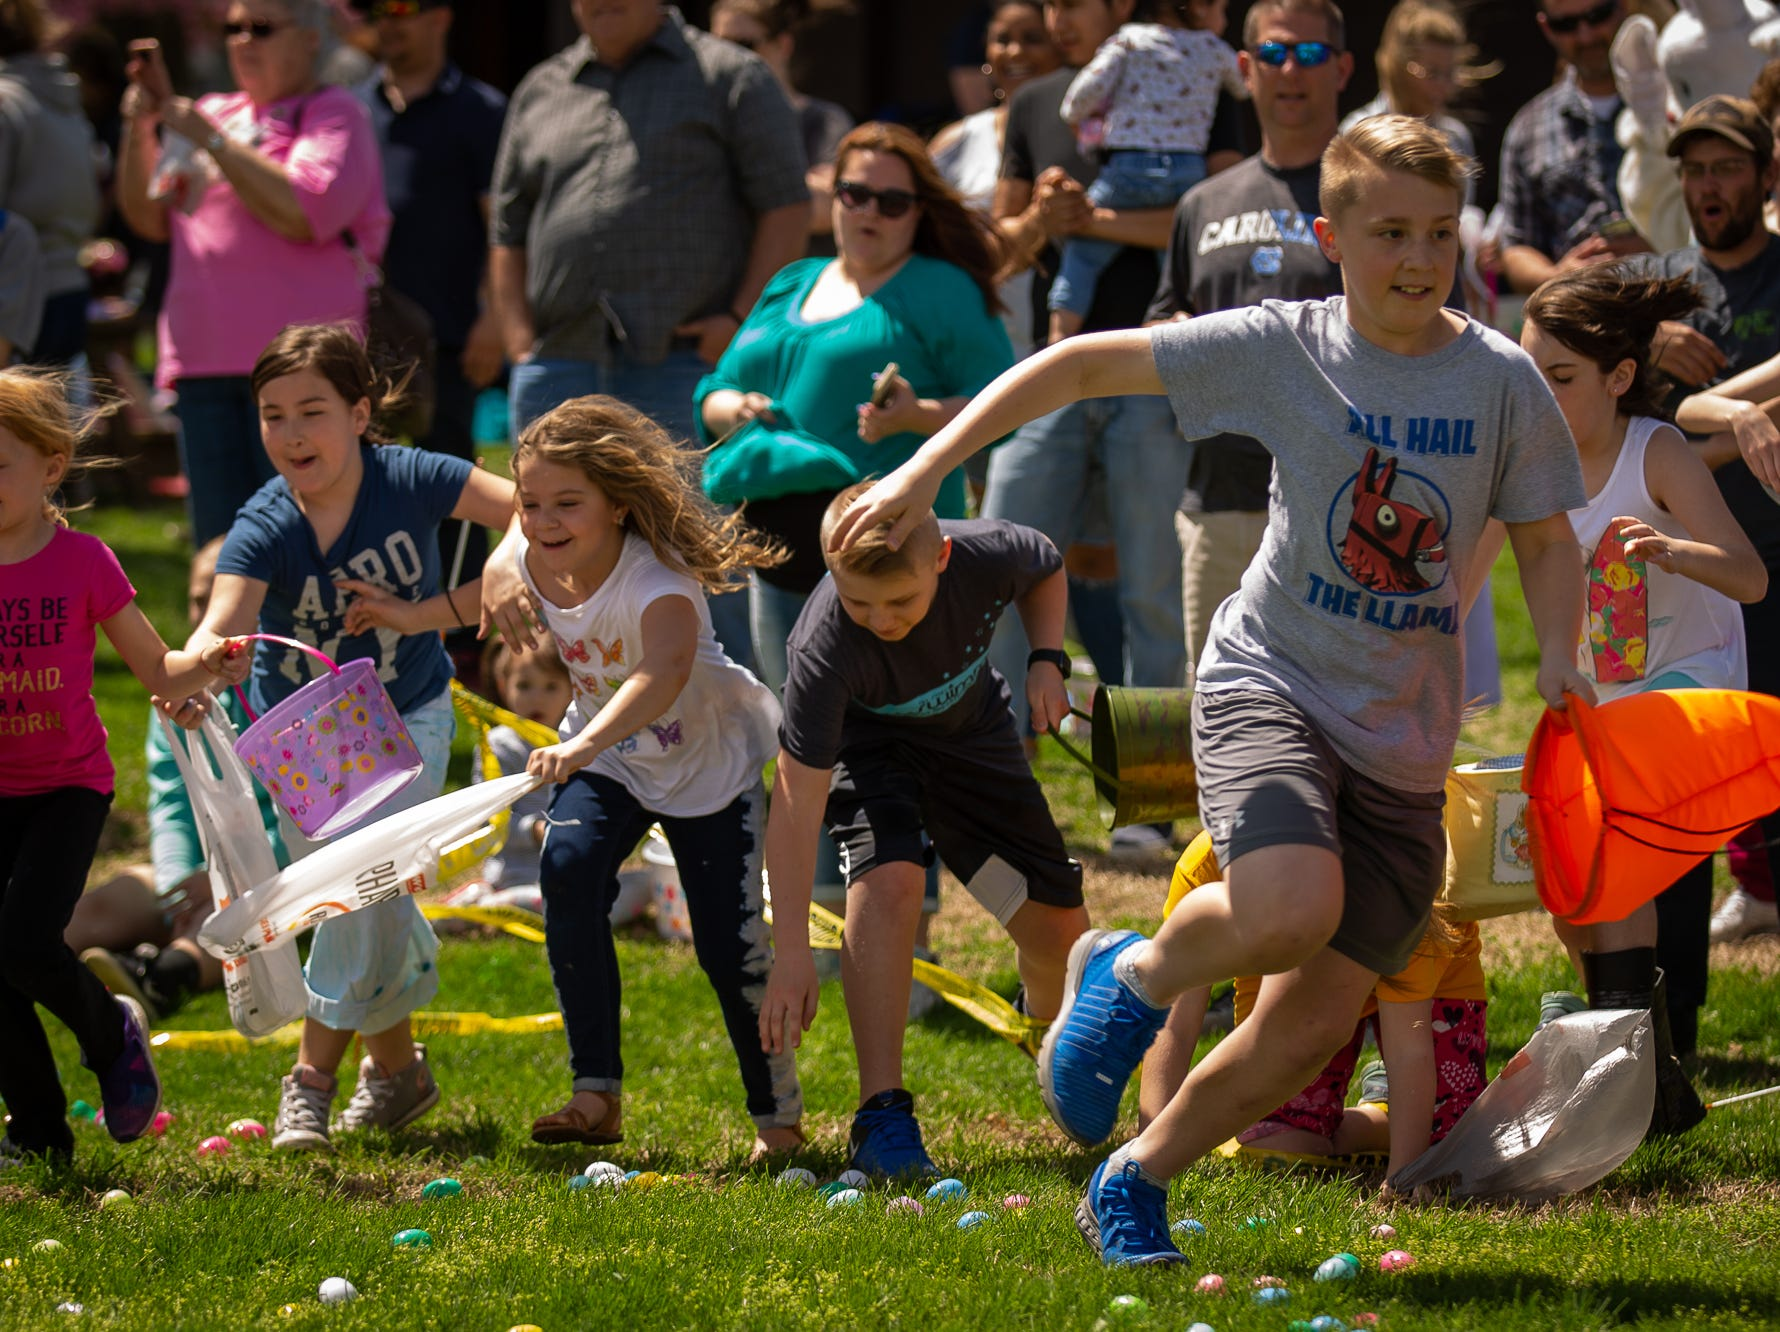 Kids collect Easter eggs during the 12th annual Hanover Community Easter Egg Hunt at Moul Field, Saturday, April 20, 2019, in Hanover.